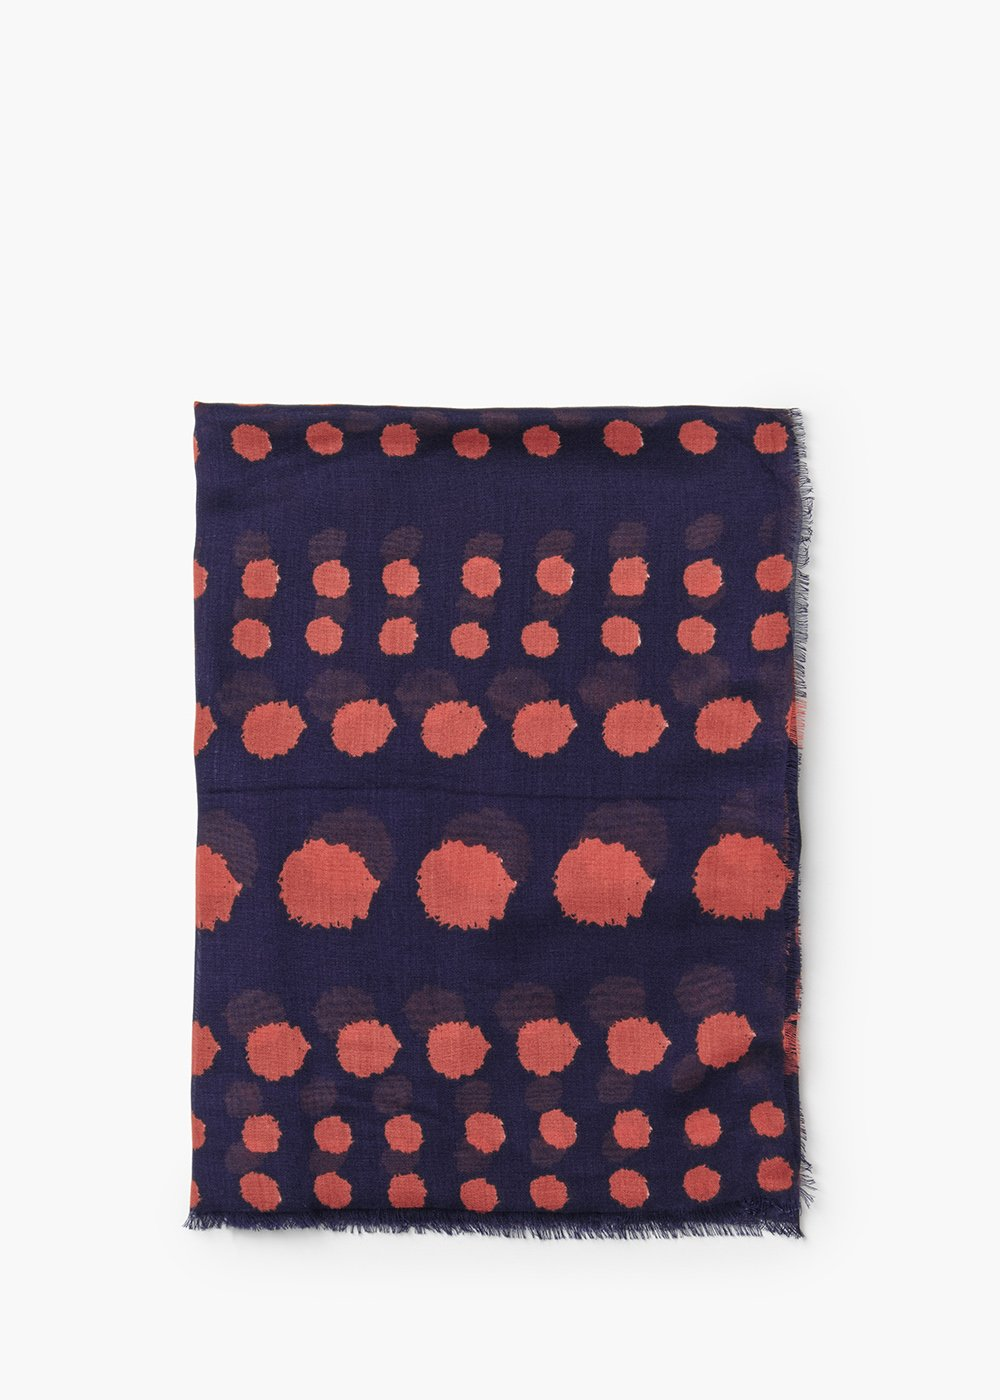 Star viscose scarf with polka dot print